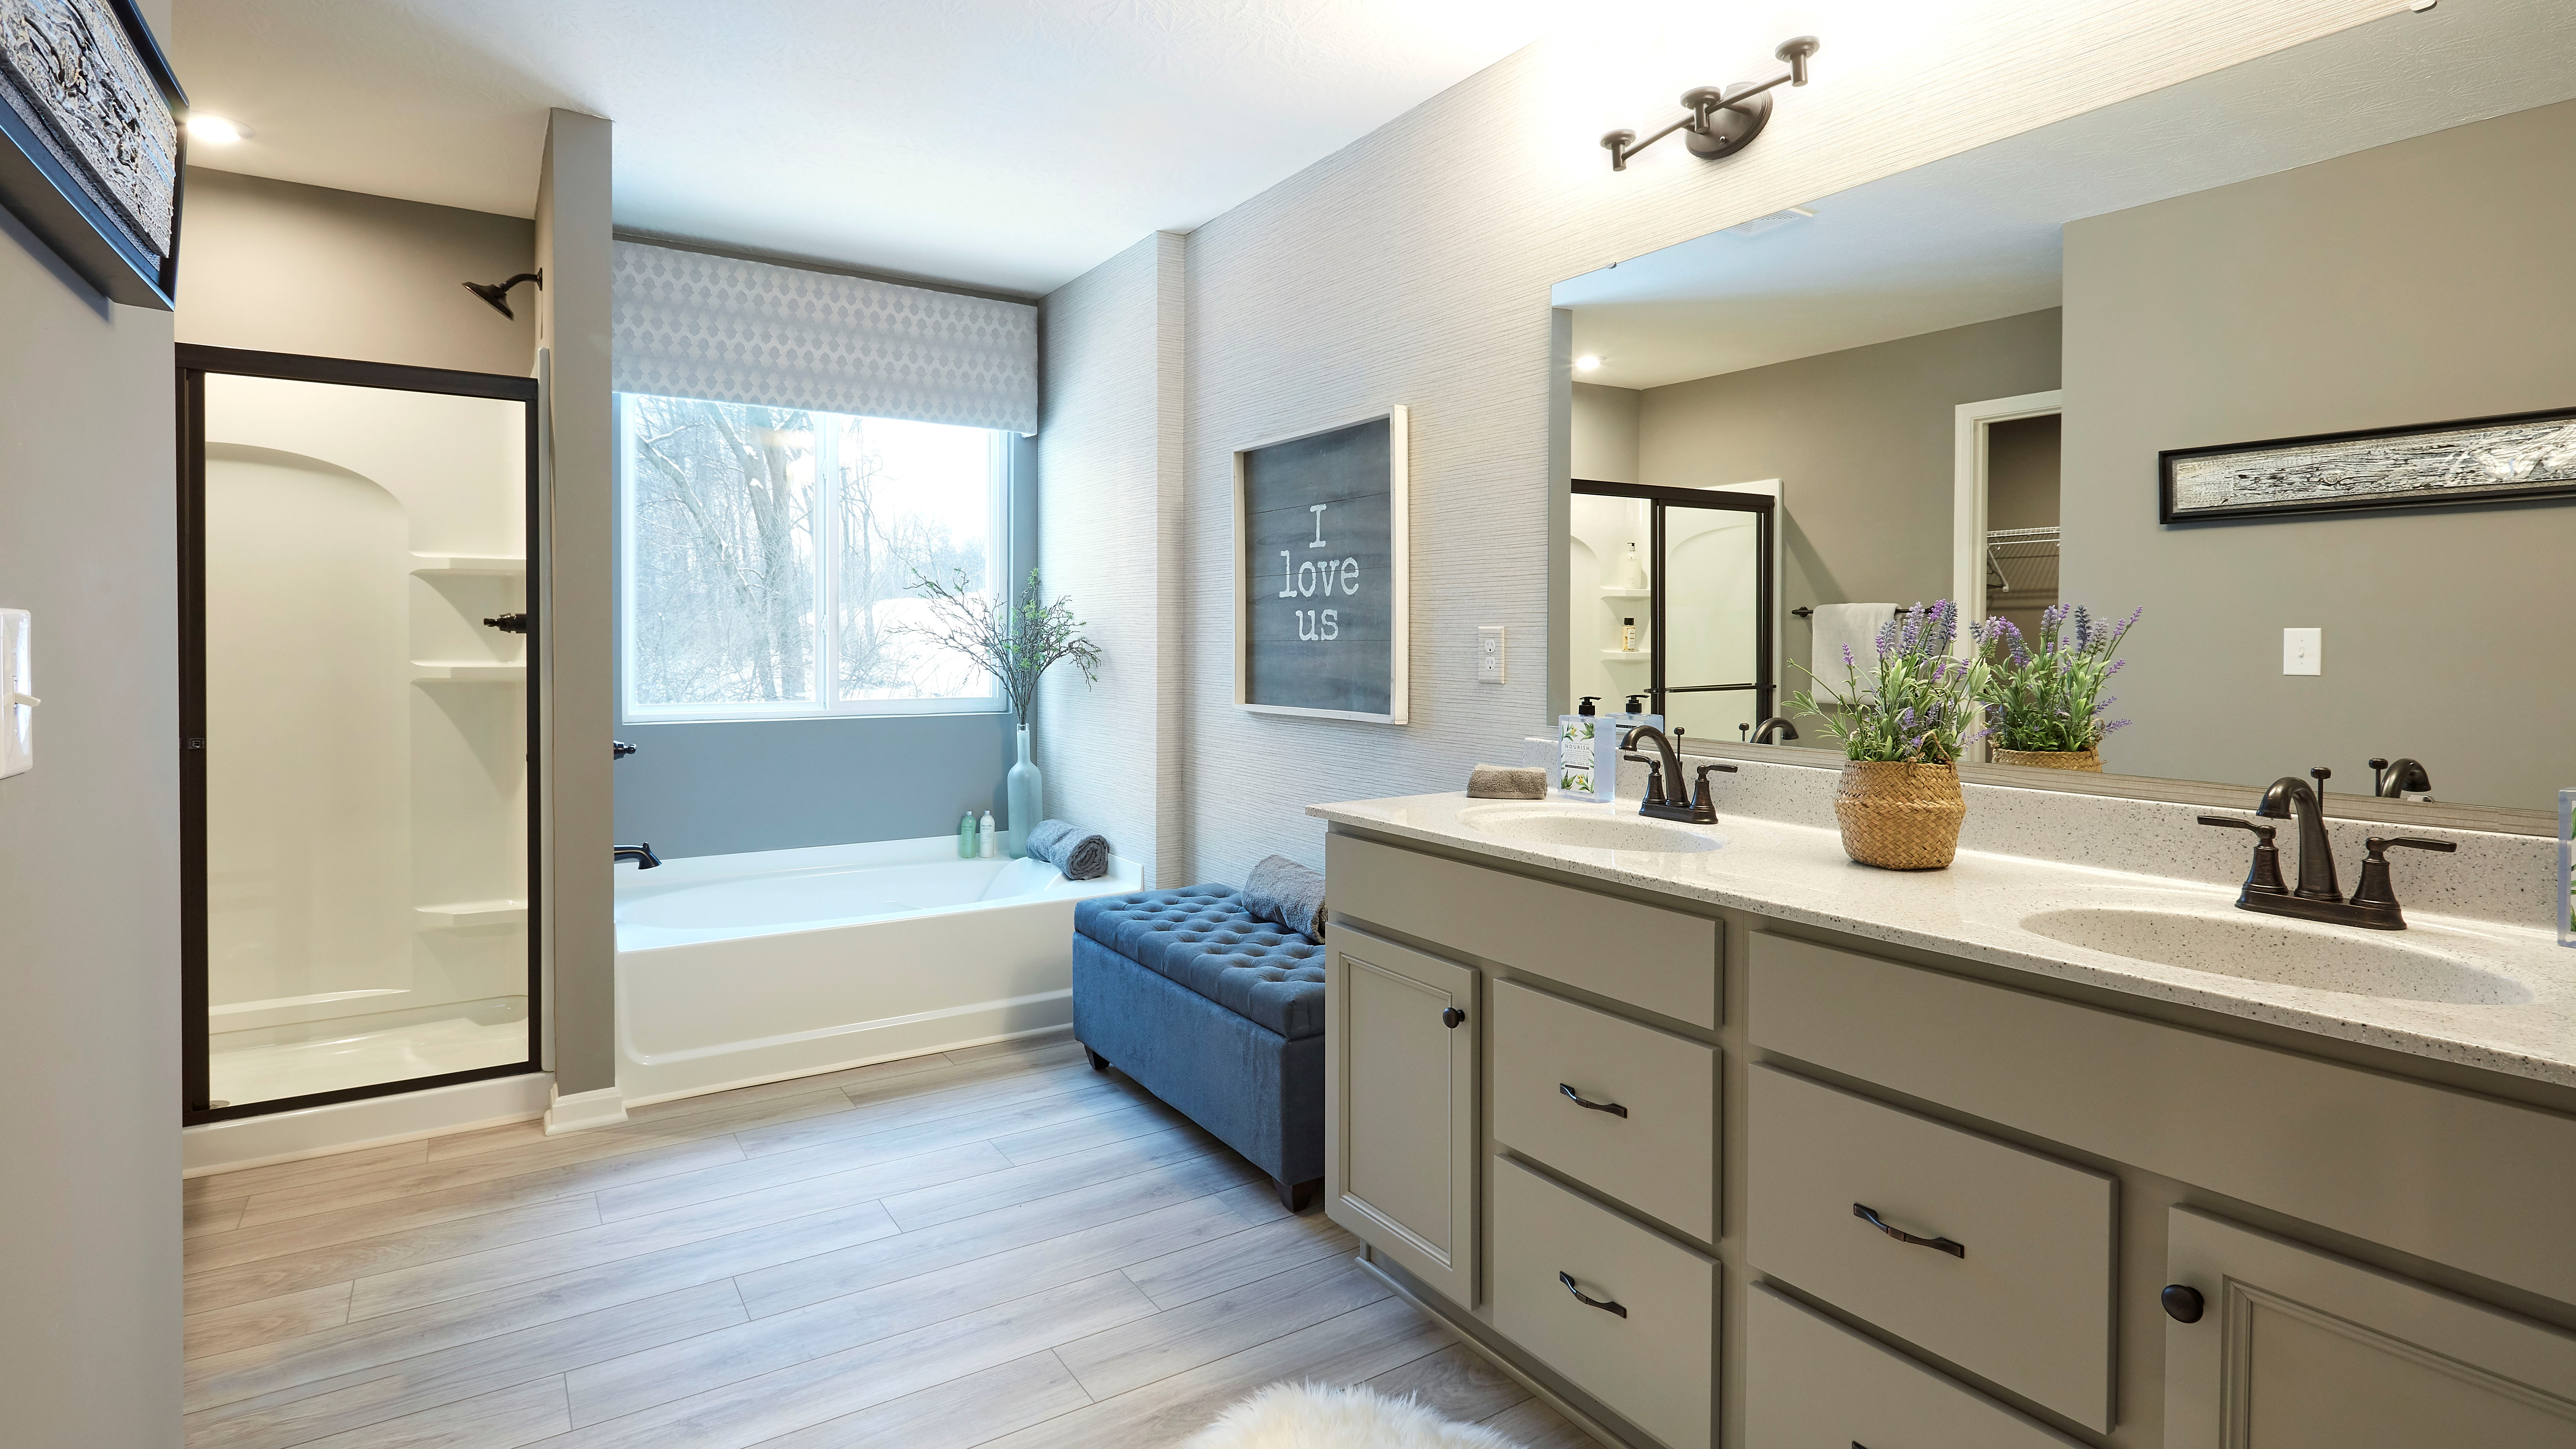 Denali- arden-place-model-private-owners-suite-bathroom-with-large-tub-and-shower